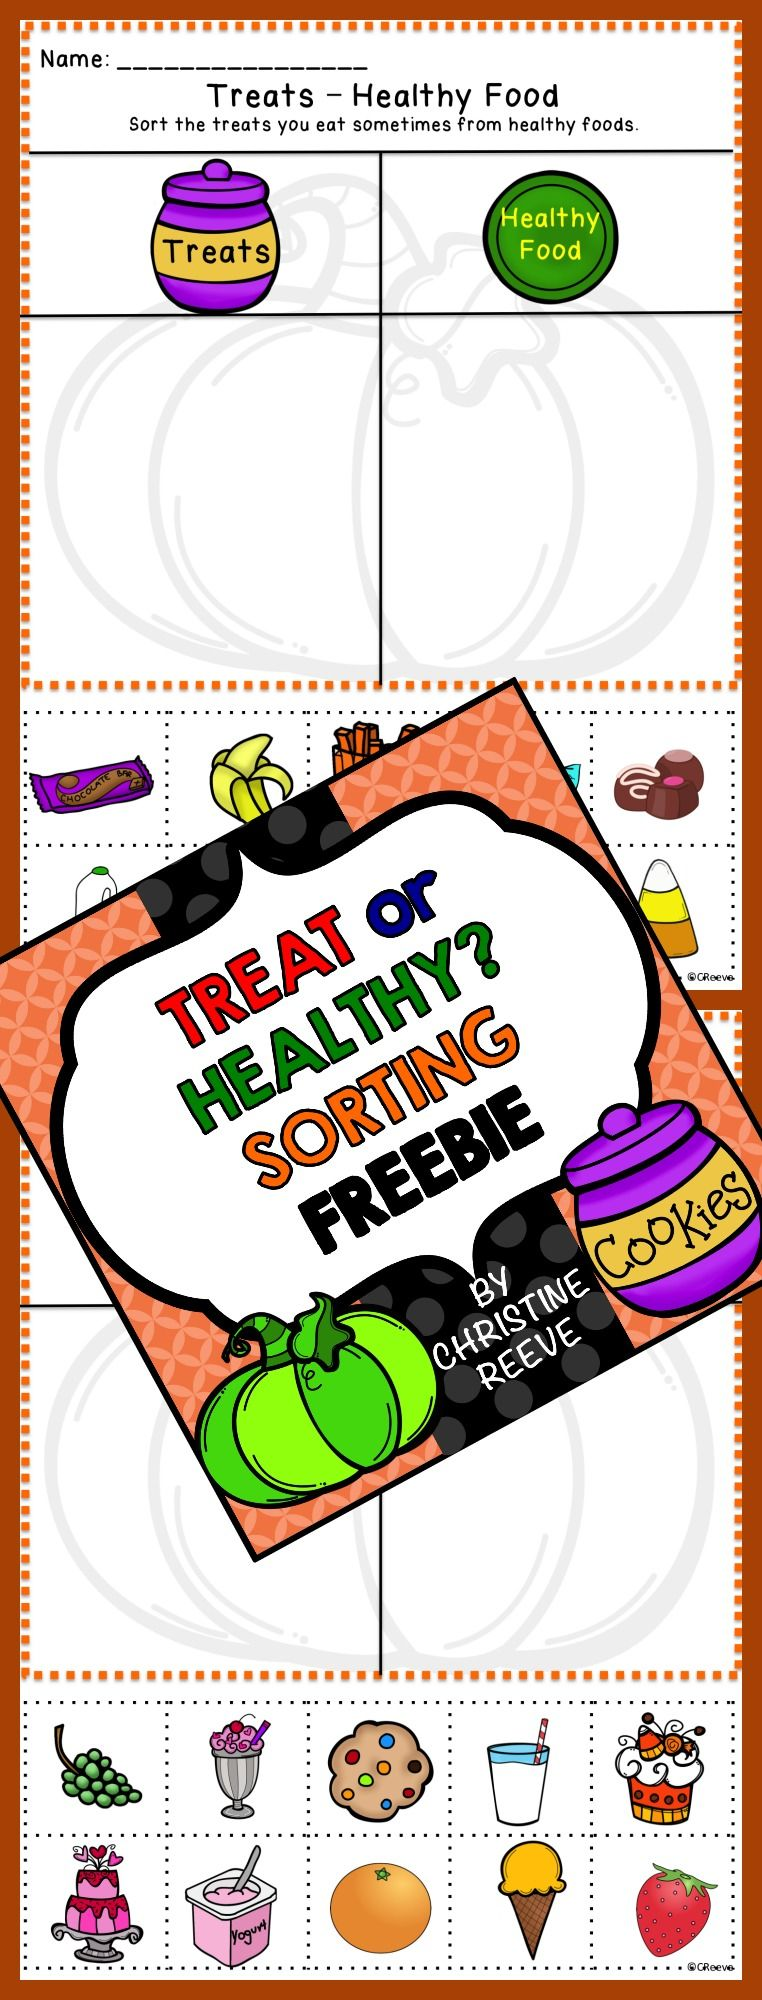 Number Names Worksheets healthy lifestyle worksheets : This FREE sorting activity for healthy/ not healthy foods. Perfect ...